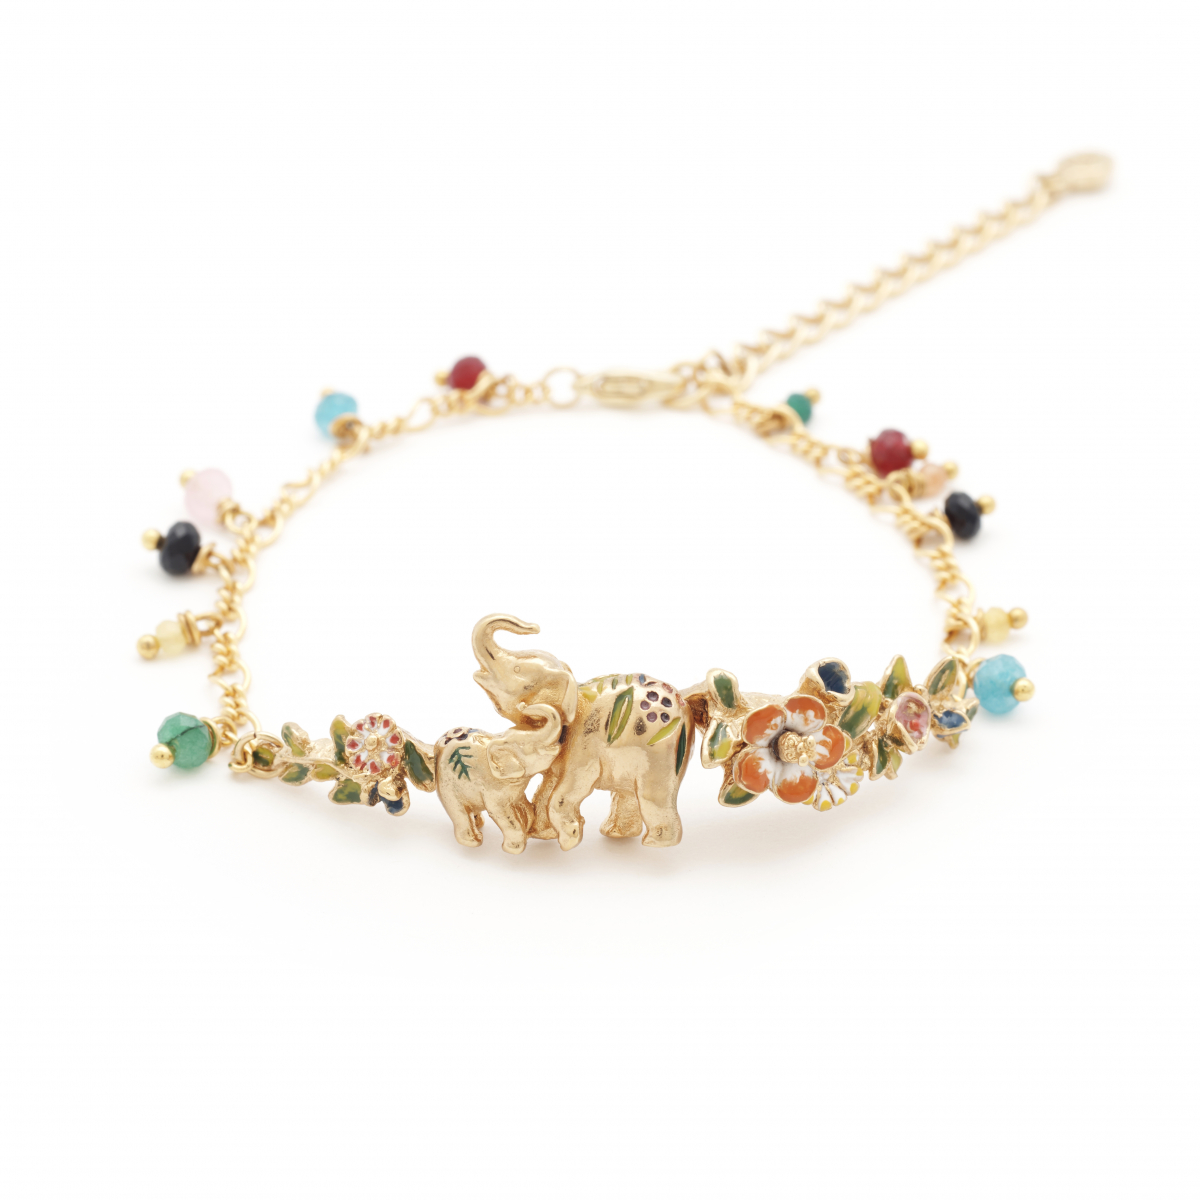 Elephant Statement Bracelet - Gold